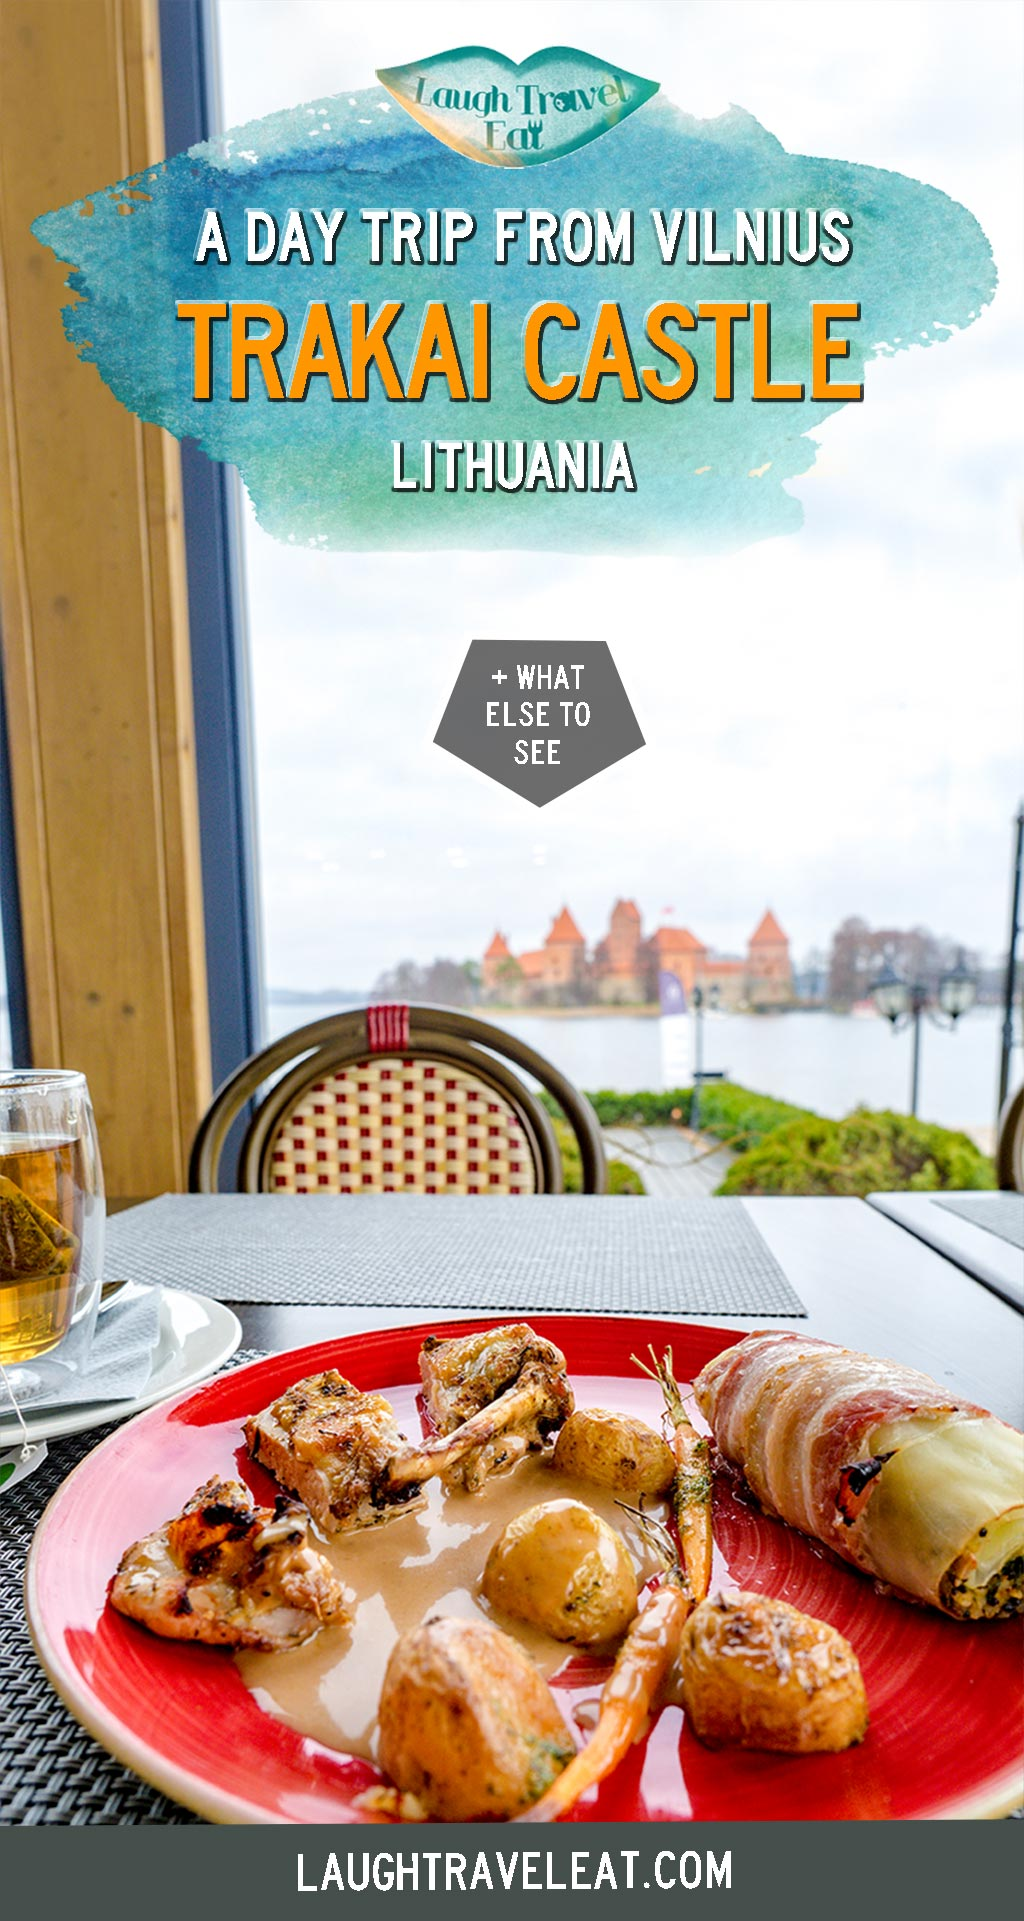 Trakai Castle is about an hour from Vilnius and a famous landmark not only because it is a castle in a lake. It is a historically significant castle that witness the beginning of the Grand Duchy of Lithuania and in particular its struggle with the Teutonic Order. Here's how to take a day trip there from Vilnius: #trakai #vilnius #Baltic #castle